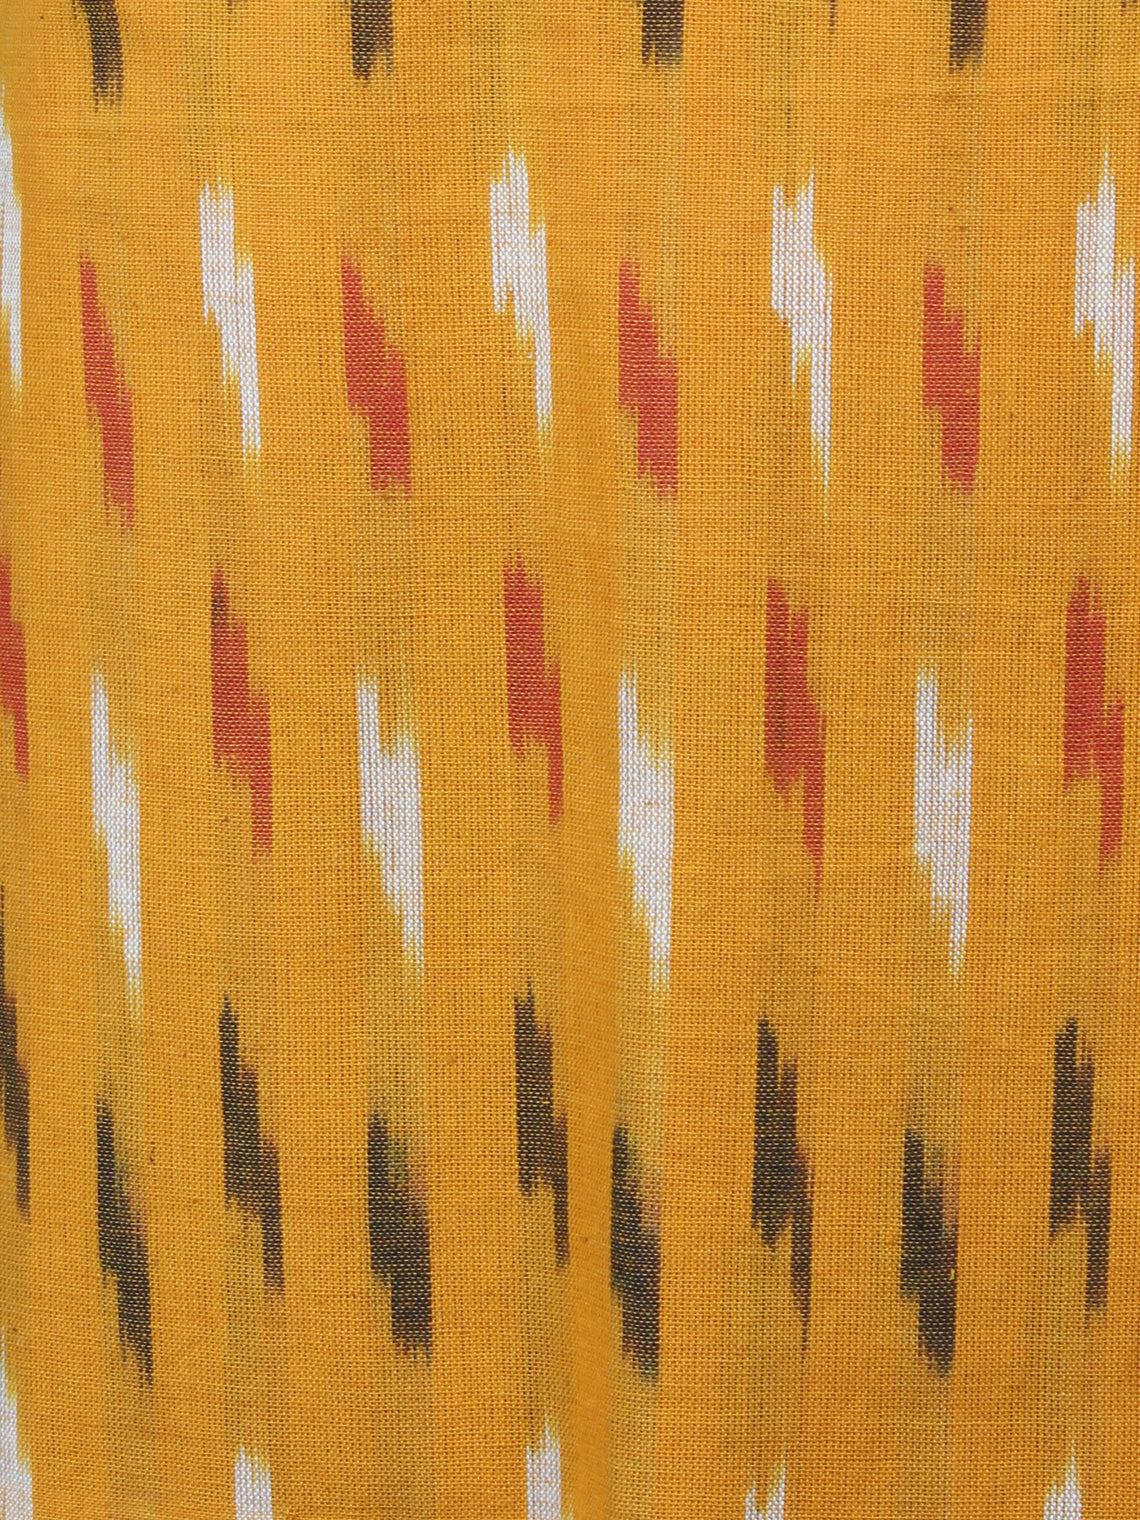 Yellow Black Red White Ikat Handwoven Cotton Suit Fabric Set of 3 - S1002041